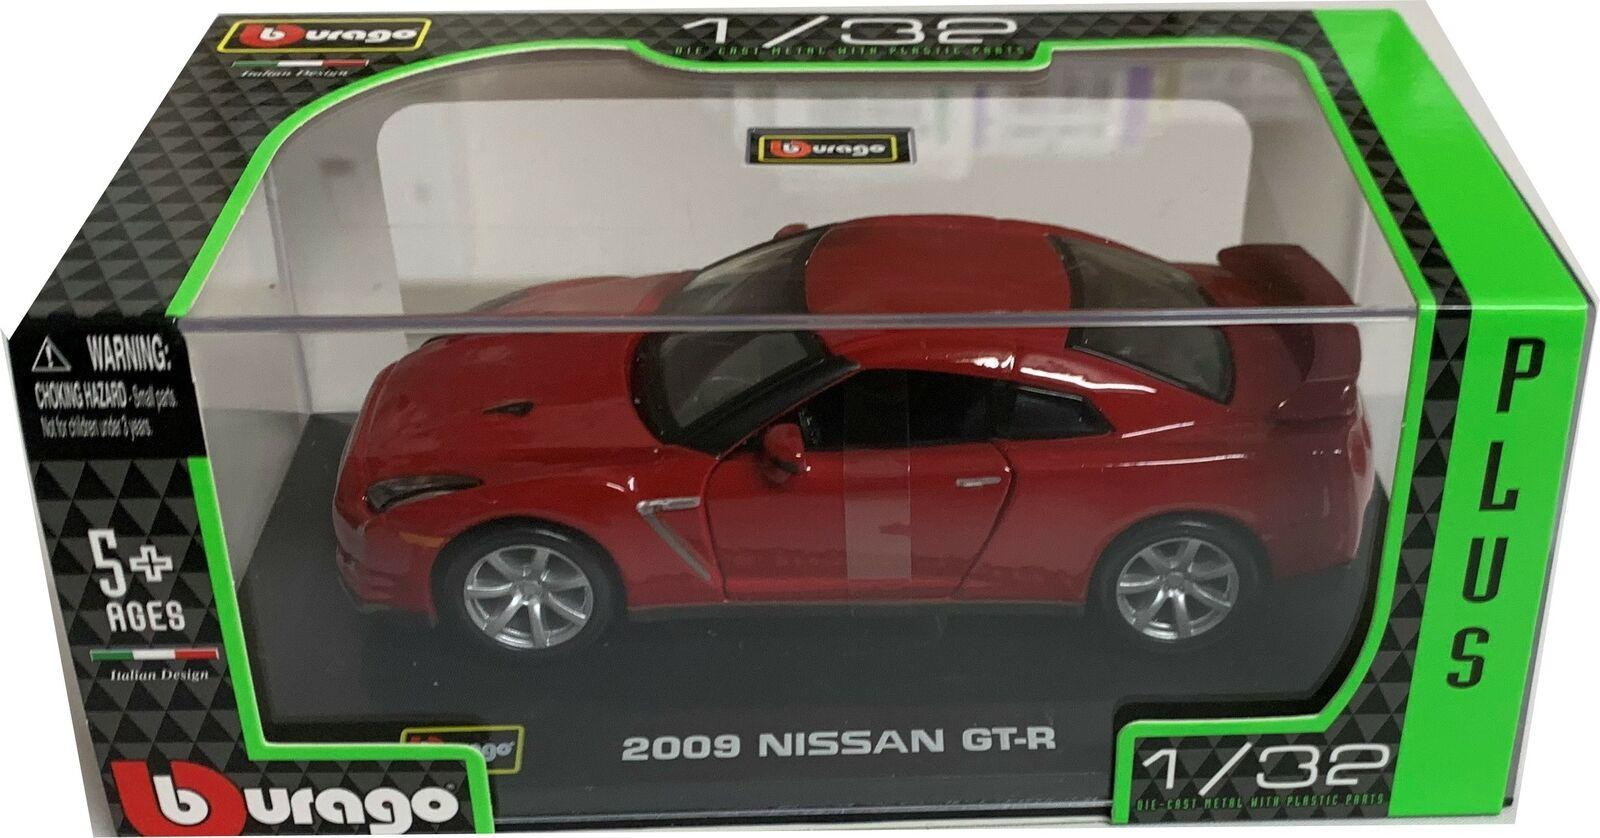 Nissan GT-R 2009 in Red 1:32 scale model from Bburago